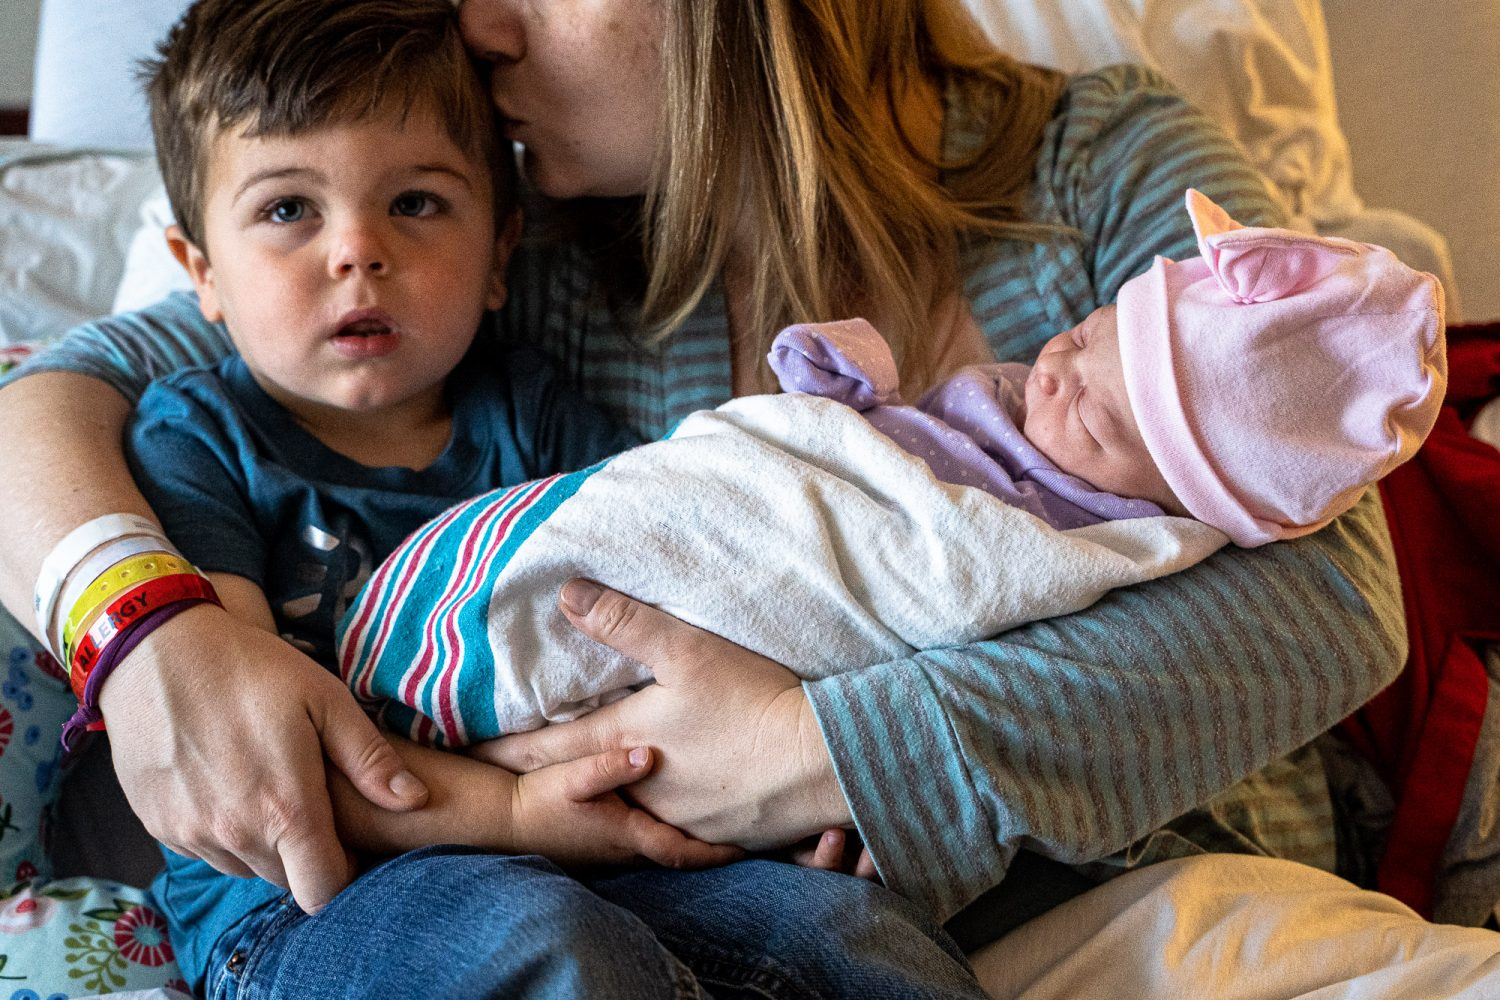 Love triangle - new big brother multitasks, helping hold his new baby sister while watching TV; mom holds both in her arms while planting a kiss on h er son's head.